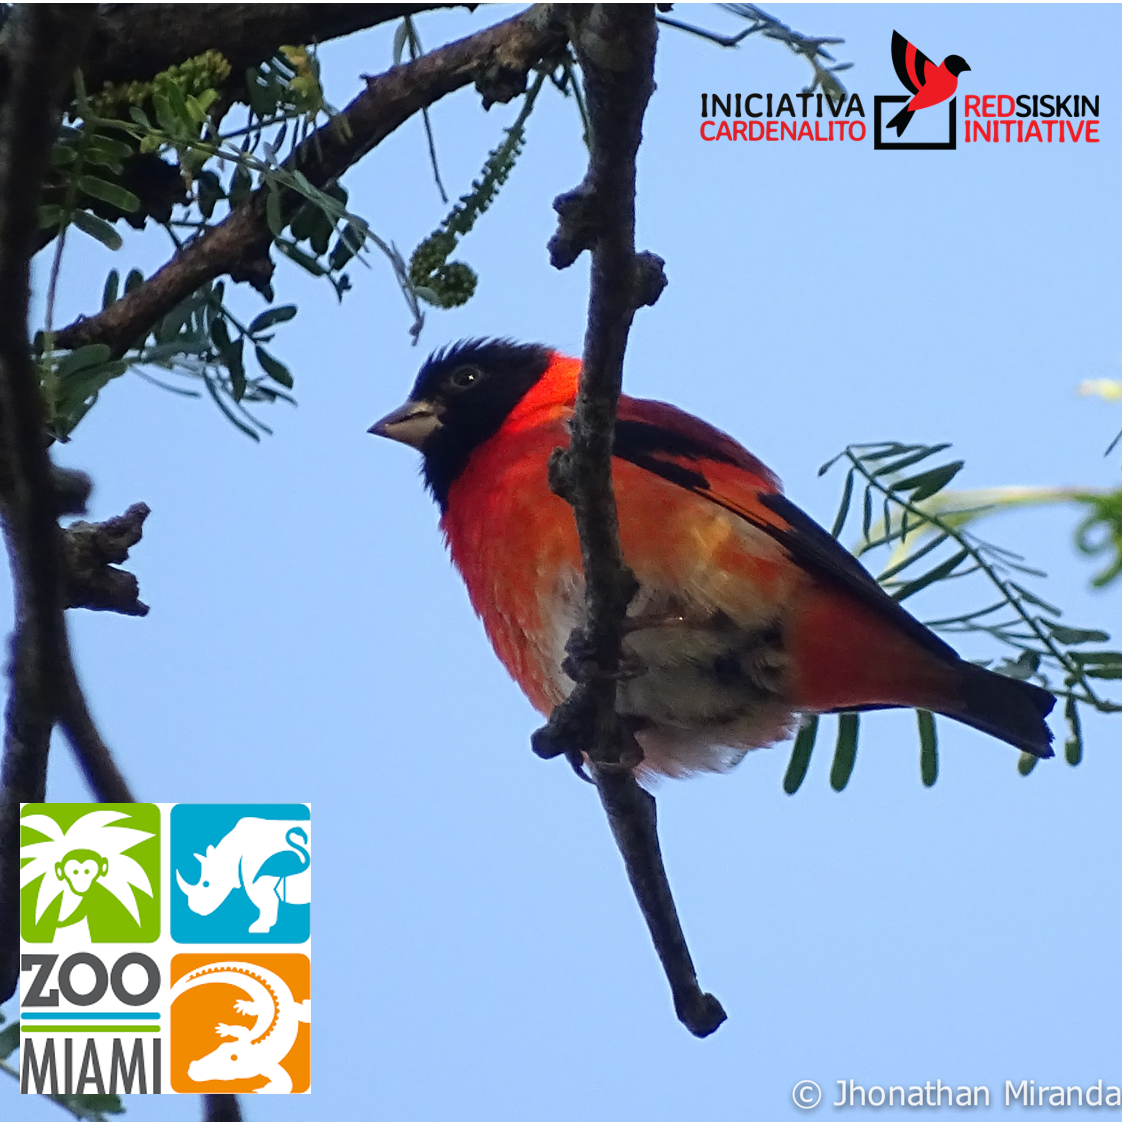 Zoo Miami: Welcome to the Red Siskin Initiative family!